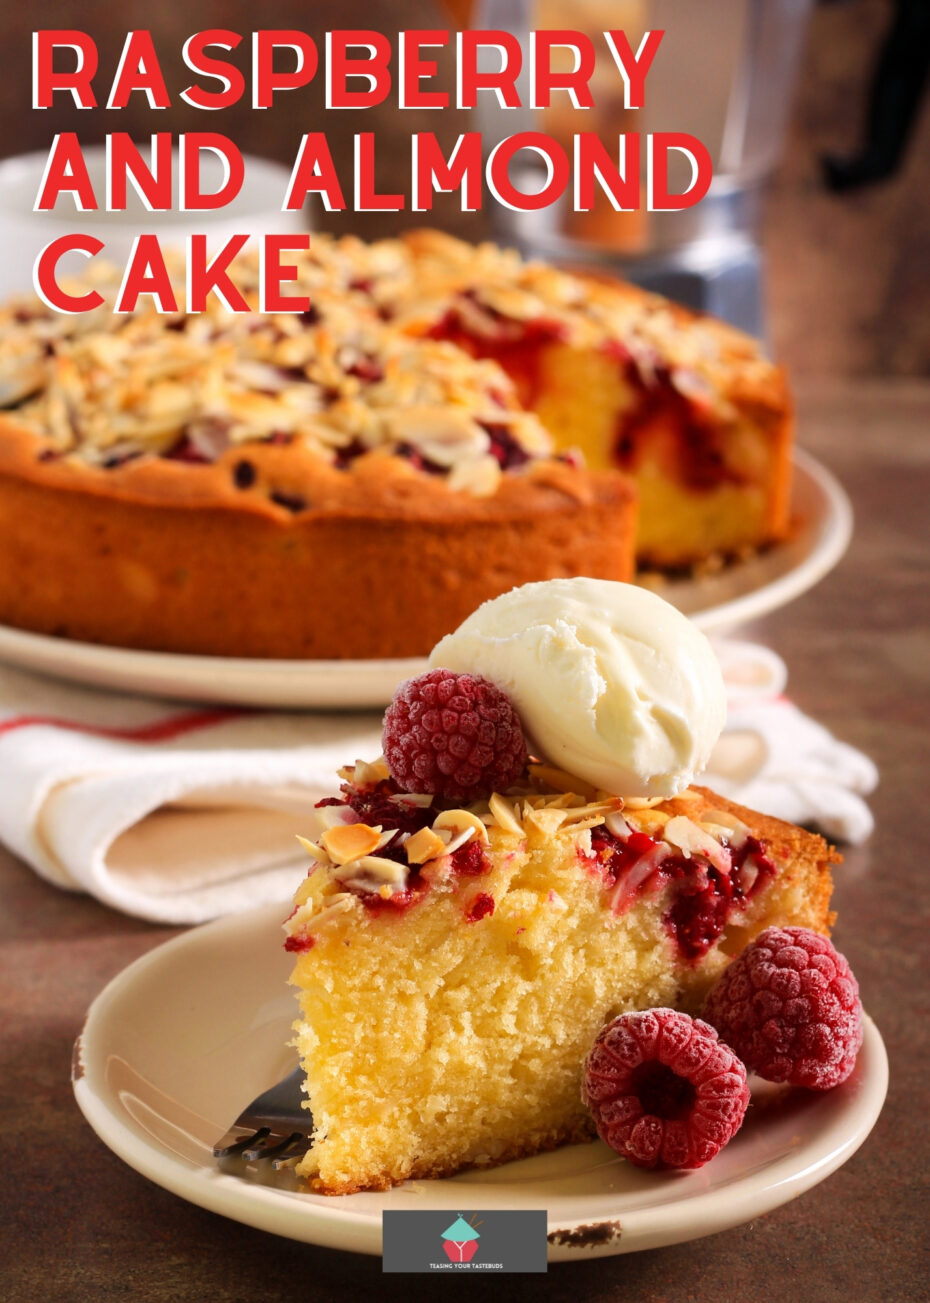 Raspberry and Almond Cake. This Raspberry and Almond Cake is an easy recipe with soft almond sponge with a scattering of fresh raspberries throughout and topped with toasted almonds. A delicious afternoon tea treat.